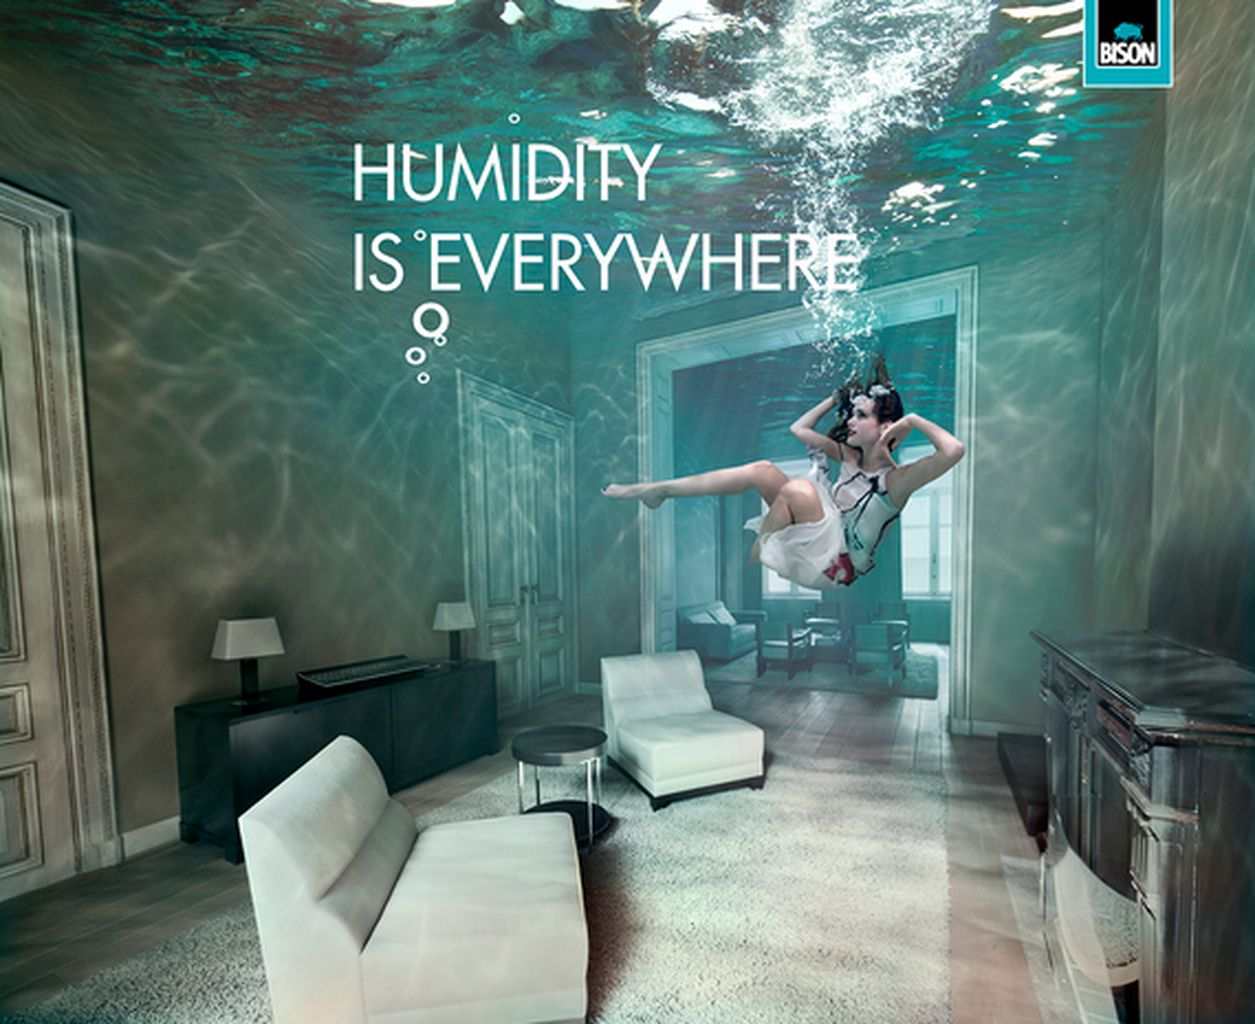 peter-de-mulder-underwater-advertising-photography-artists-legends-production_12_result.jpg